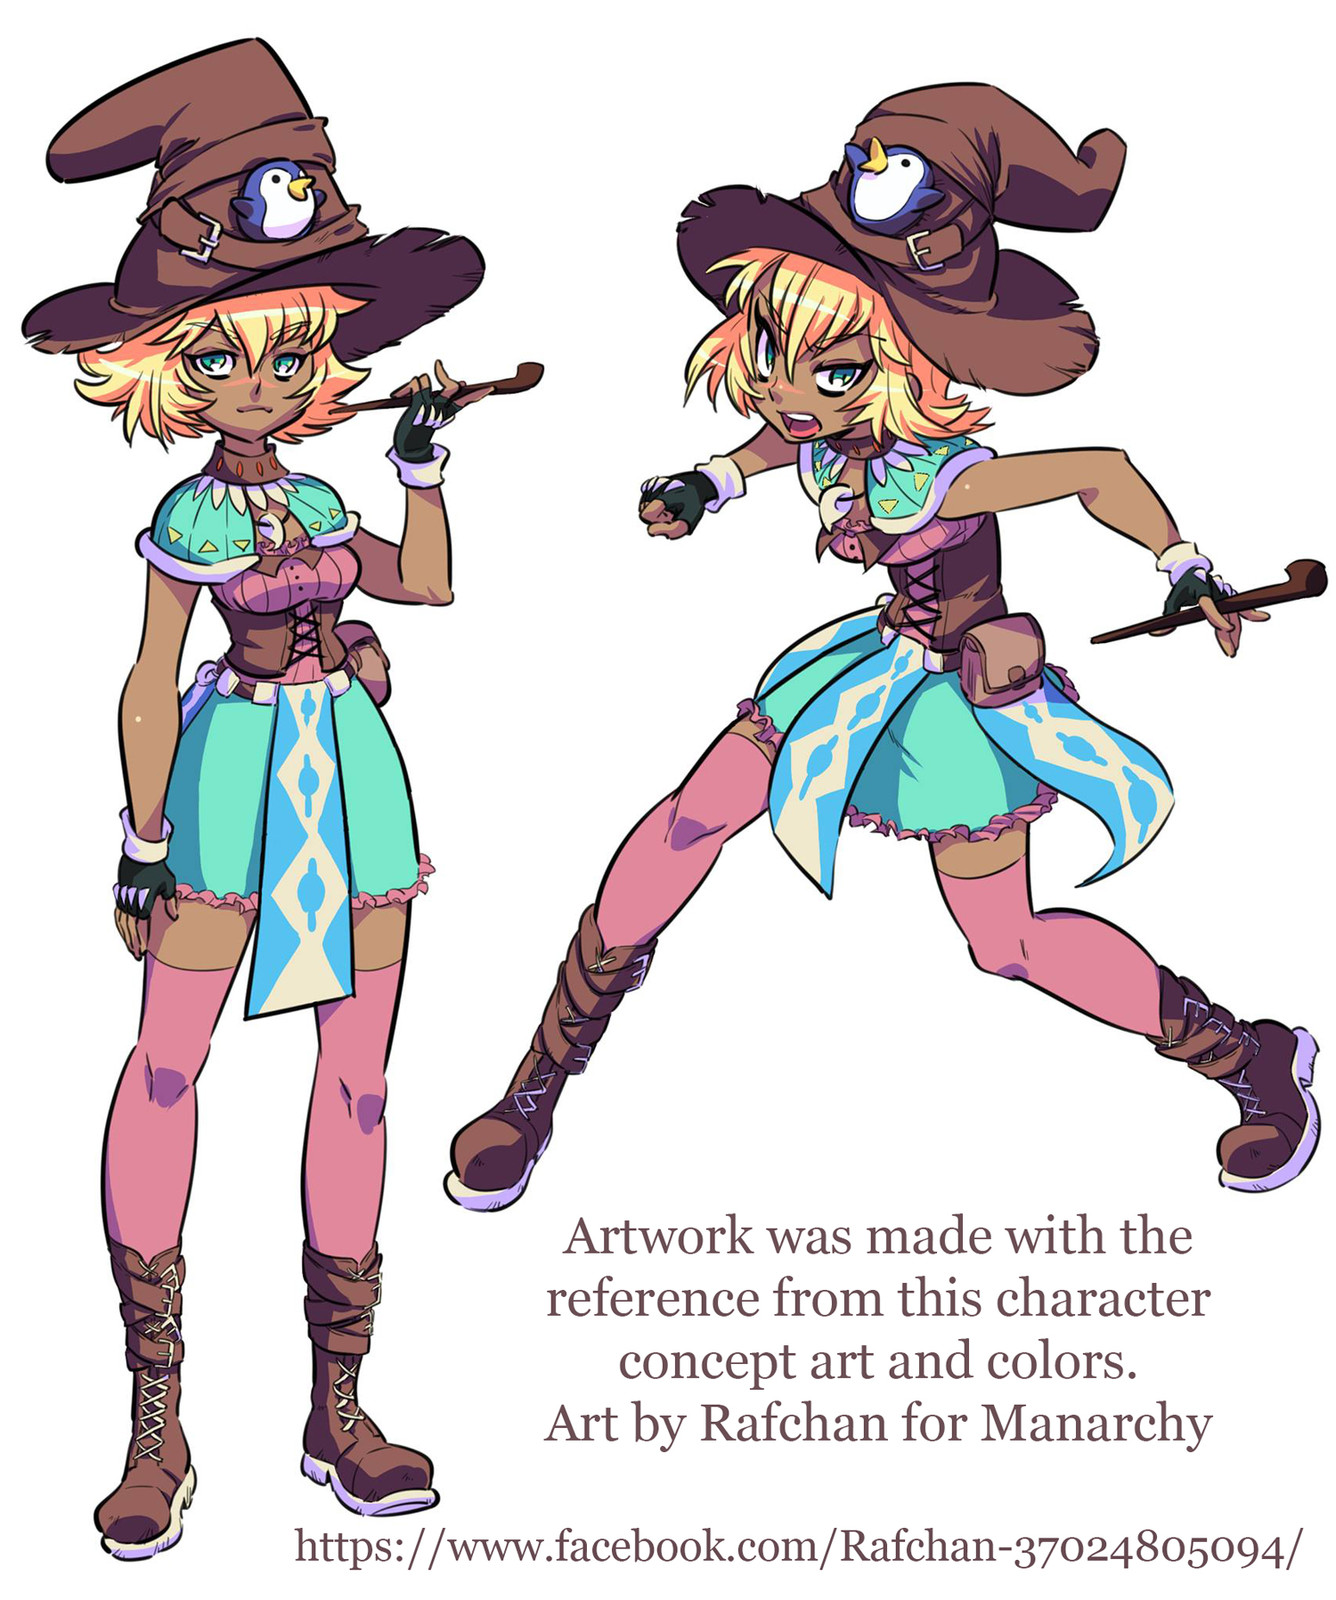 Artwork was made with the reference from this character concept art and colors. 